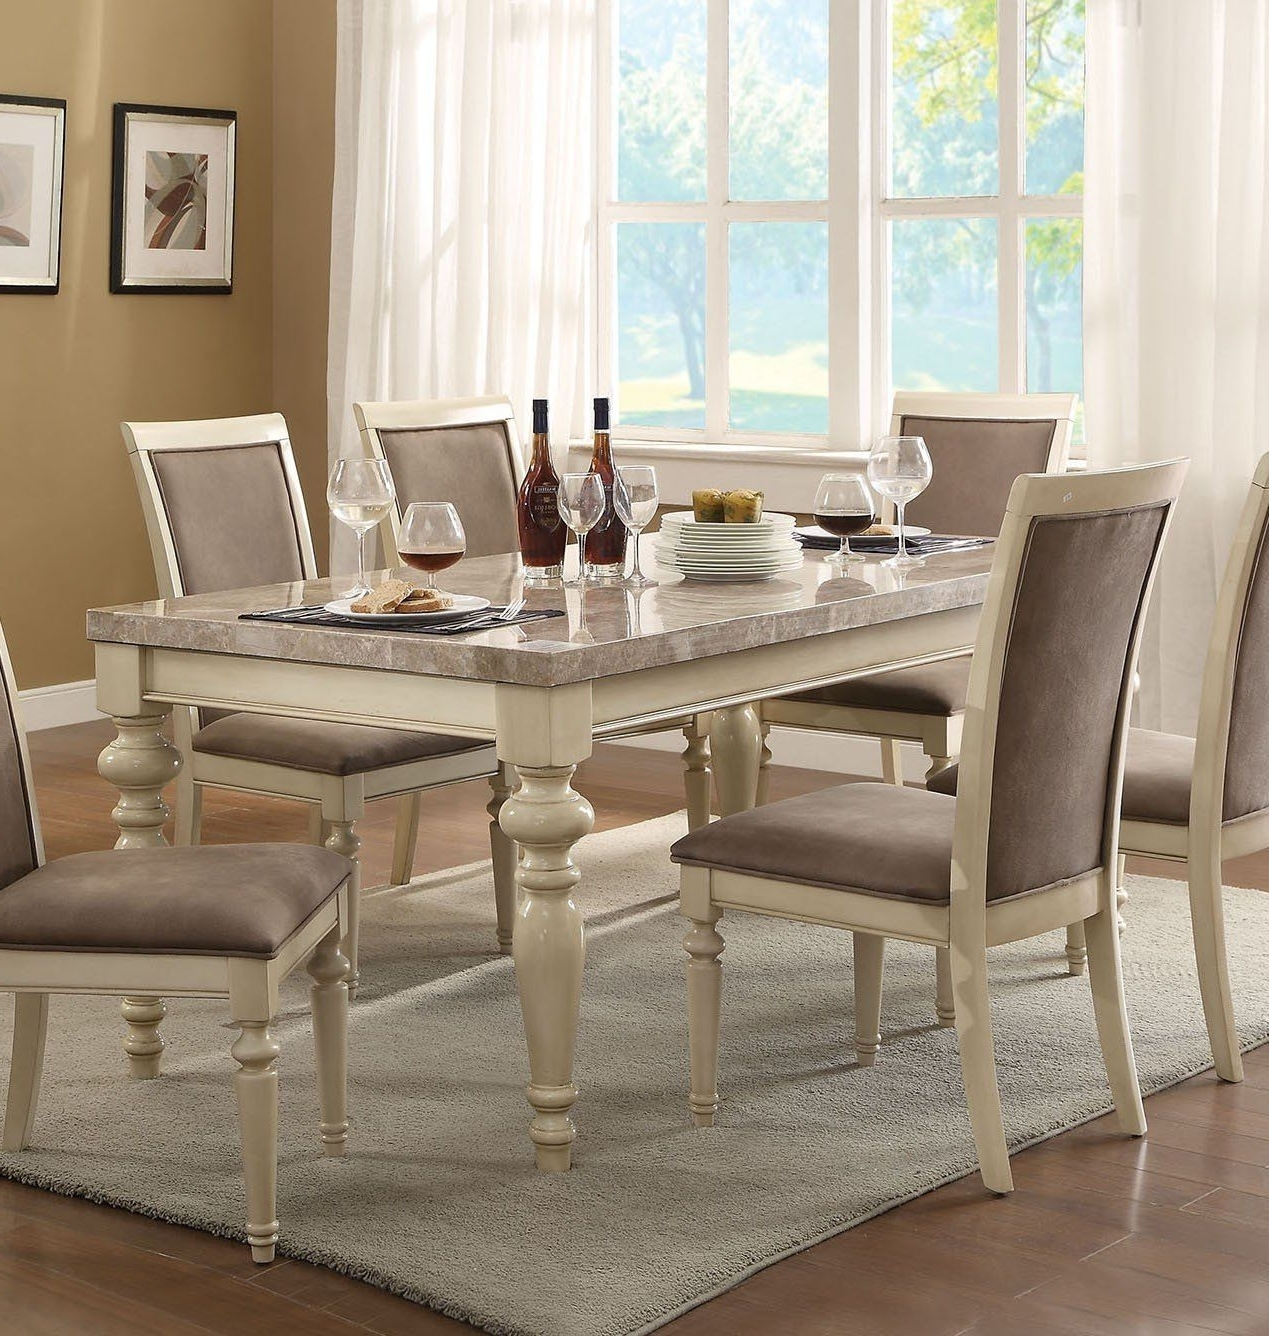 Acme 71705 Ryder Antique White Marble Top Dining Table (View 12 of 25)